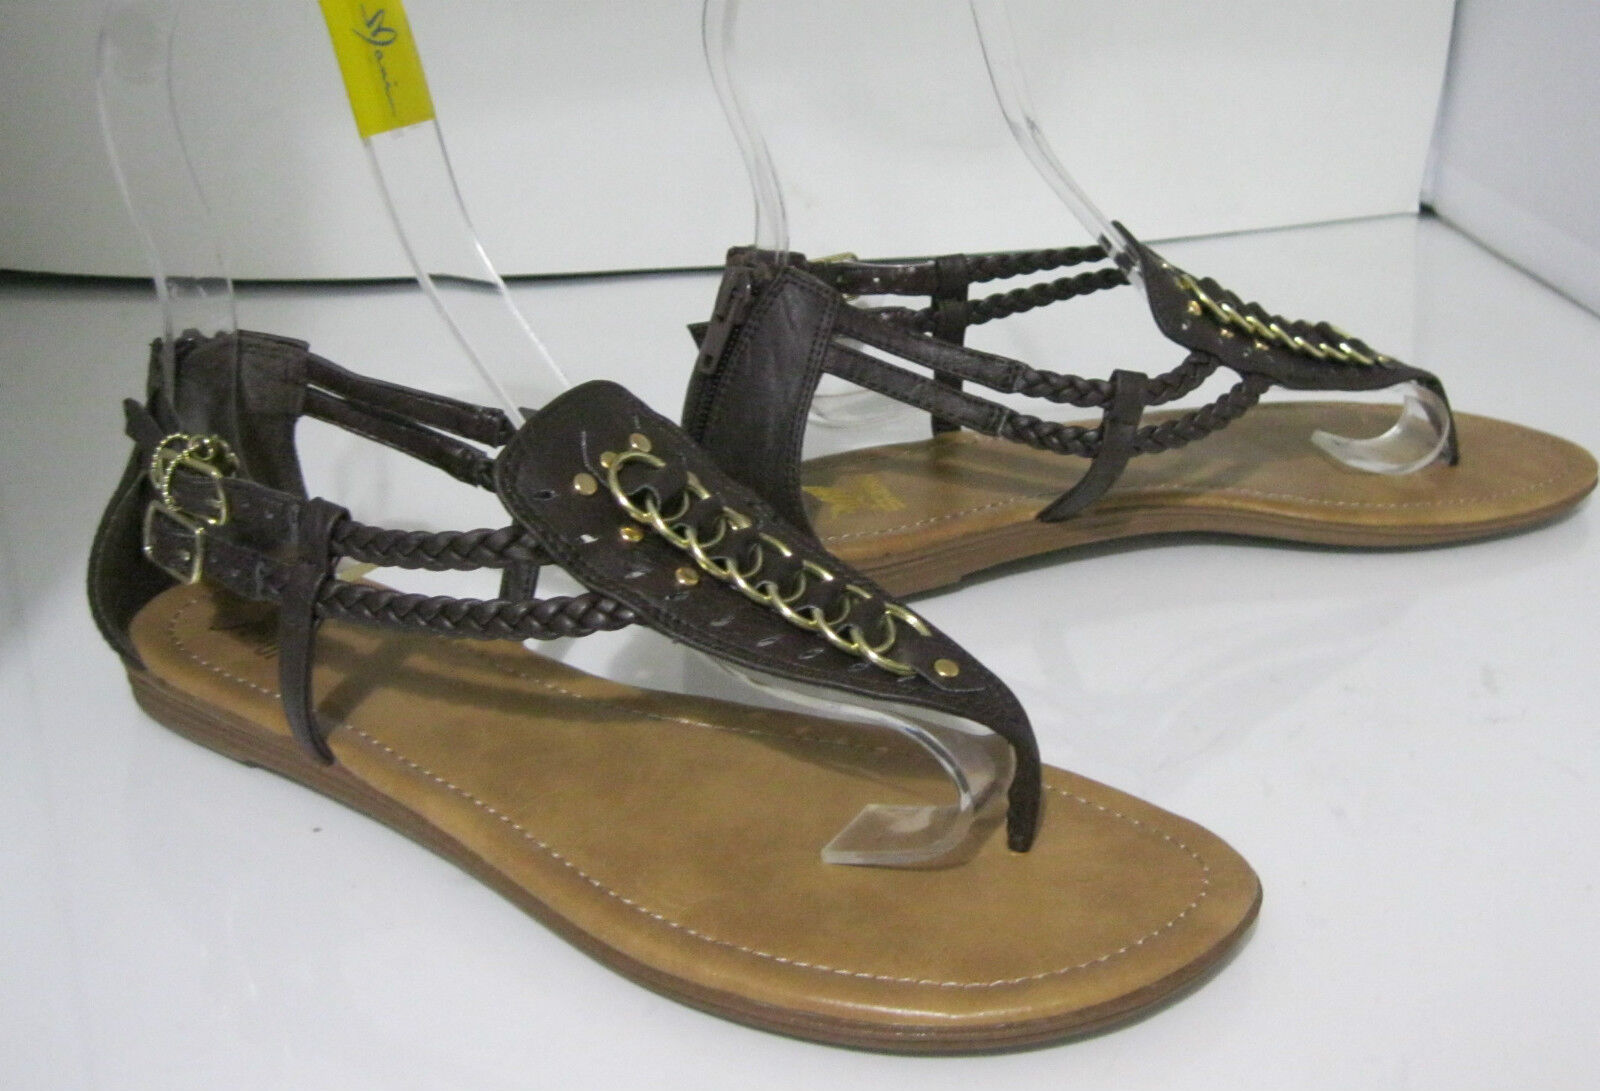 new ladies Summer Womens Brown Womens Summer Shoes Roman Gladiator Flat Sandals Size 7.5 d780cc